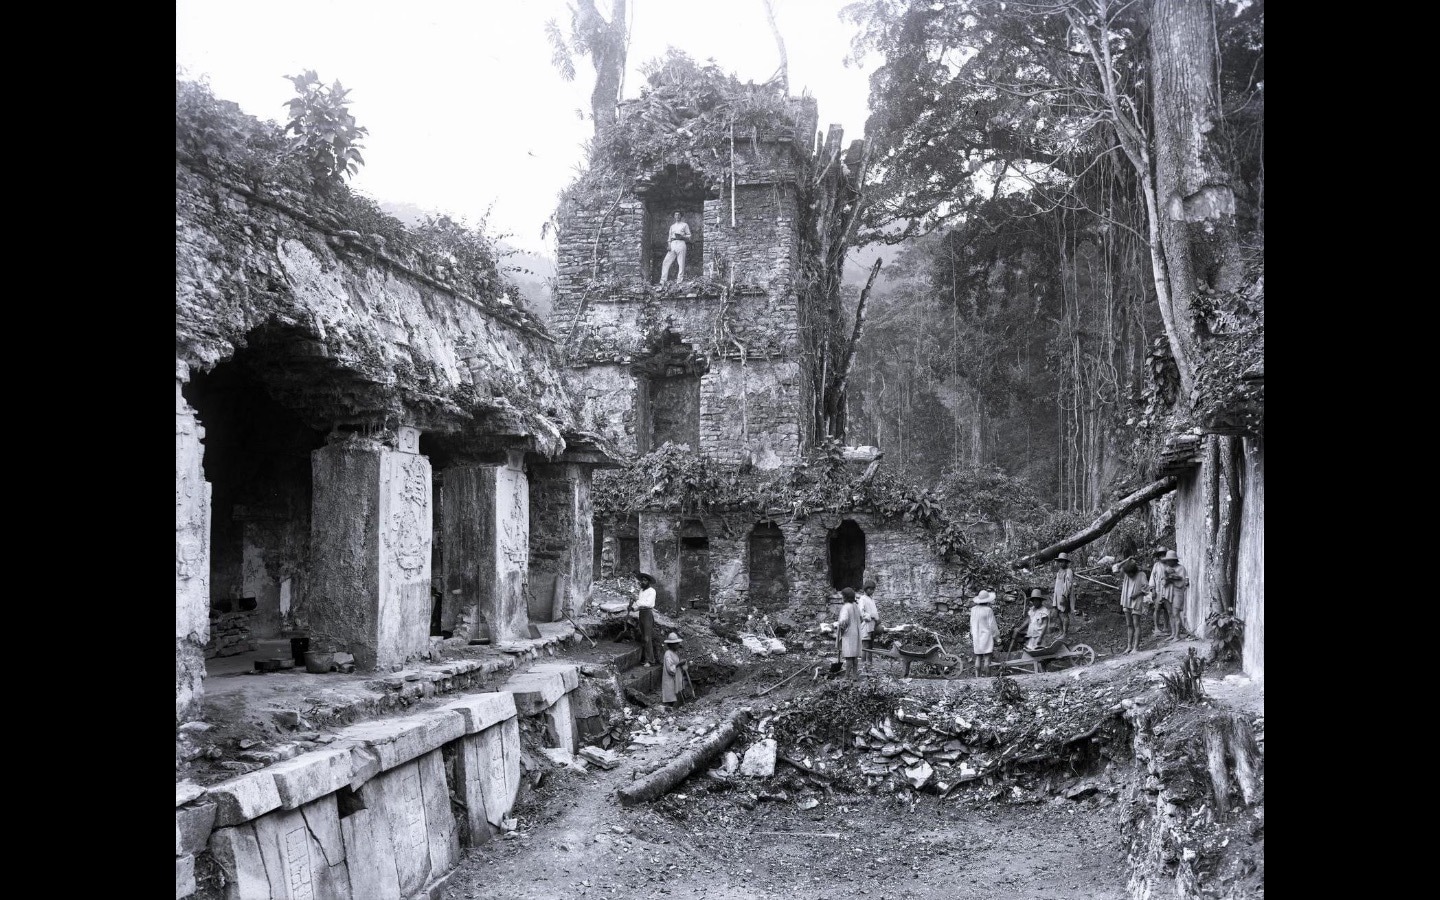 Old black and white photograph of ruined buildings in a rainforest